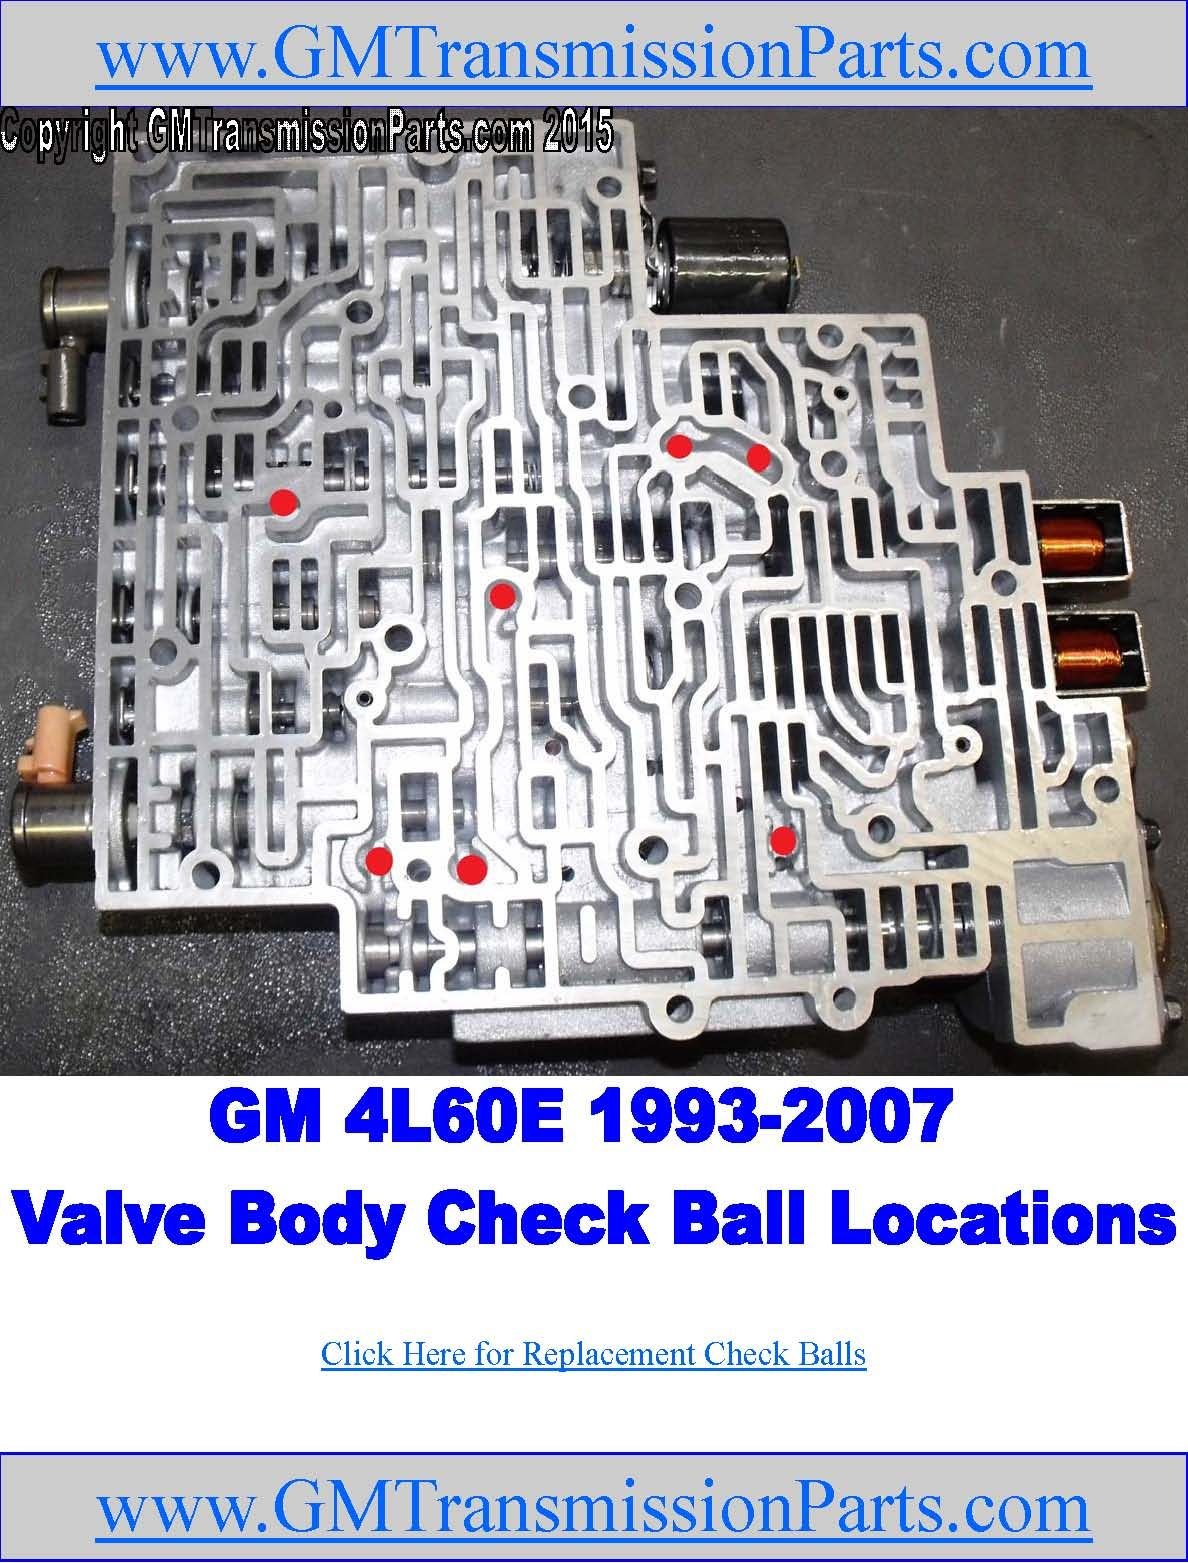 Check ball locations in GM's 4L60E transmission valve bodies There are a total of 7 check balls